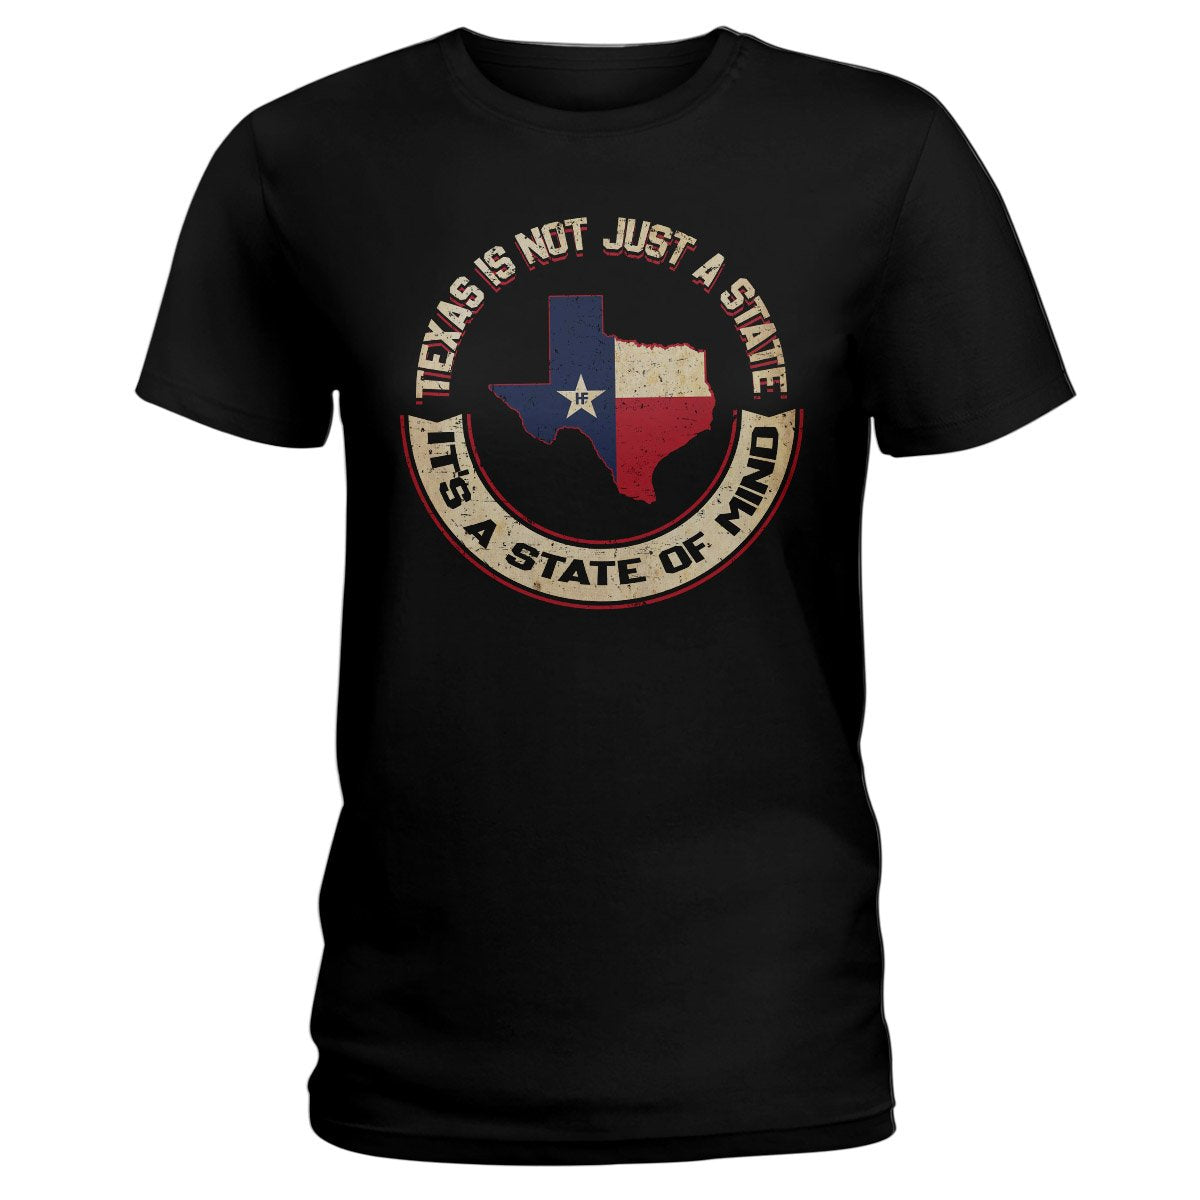 Texas Is Not Just A State It's A State Of Mind EZ16 0802 Ladies T-shirt